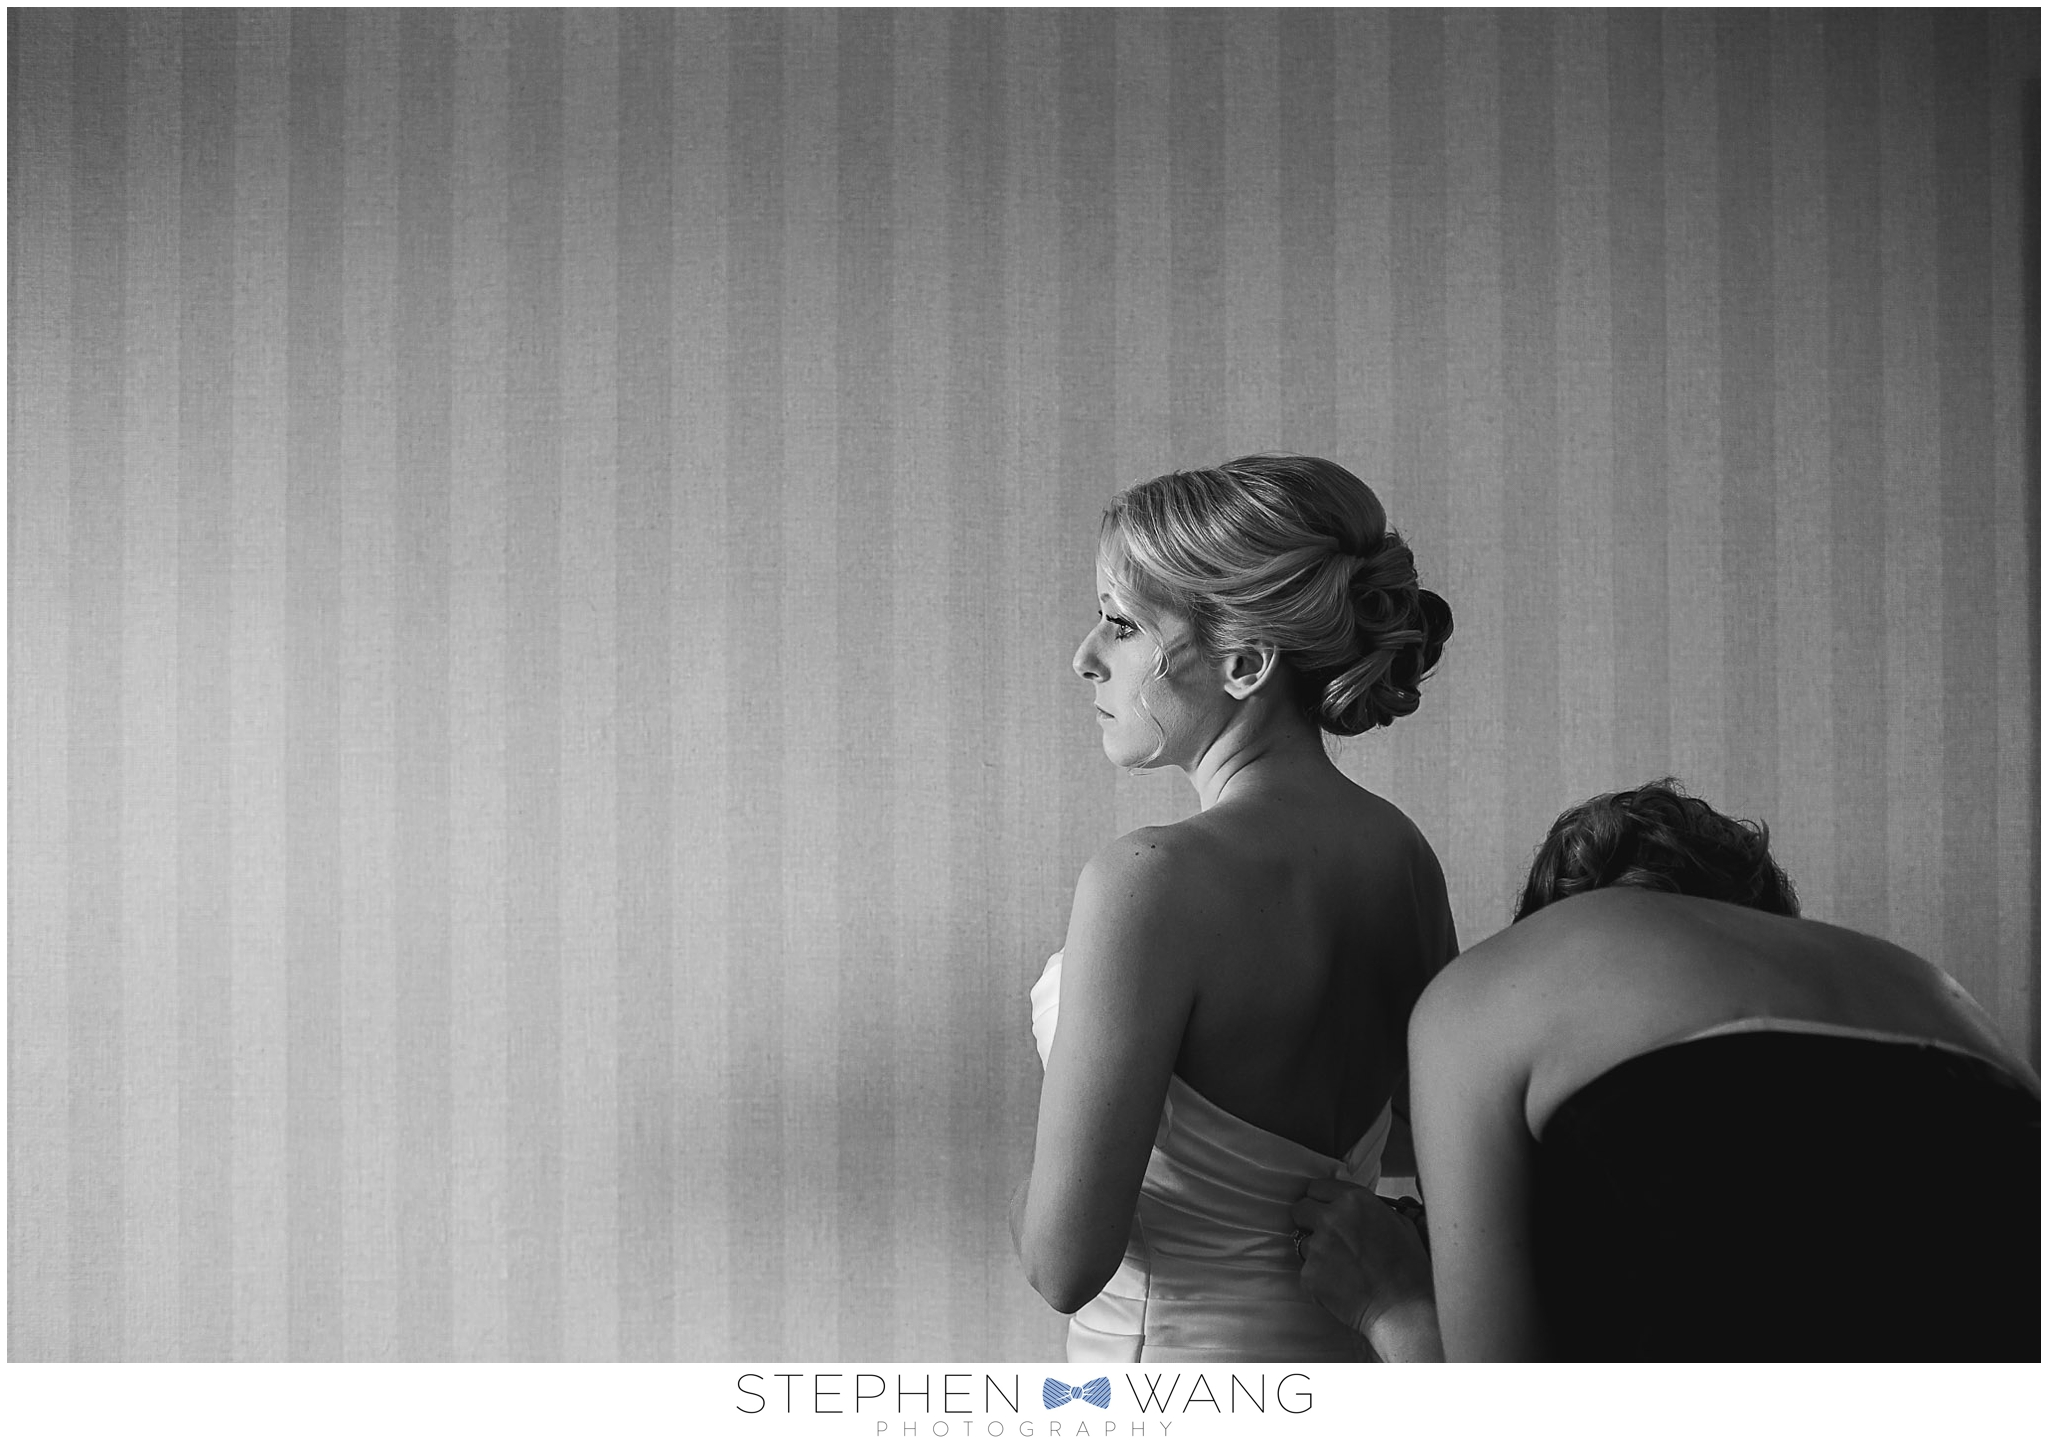 Stephen Wang Photography winter wedding connecticut east haddam riverhouse haddam ct middletown inn christmas wedding photography connecticut photographer-01-15_0006.jpg